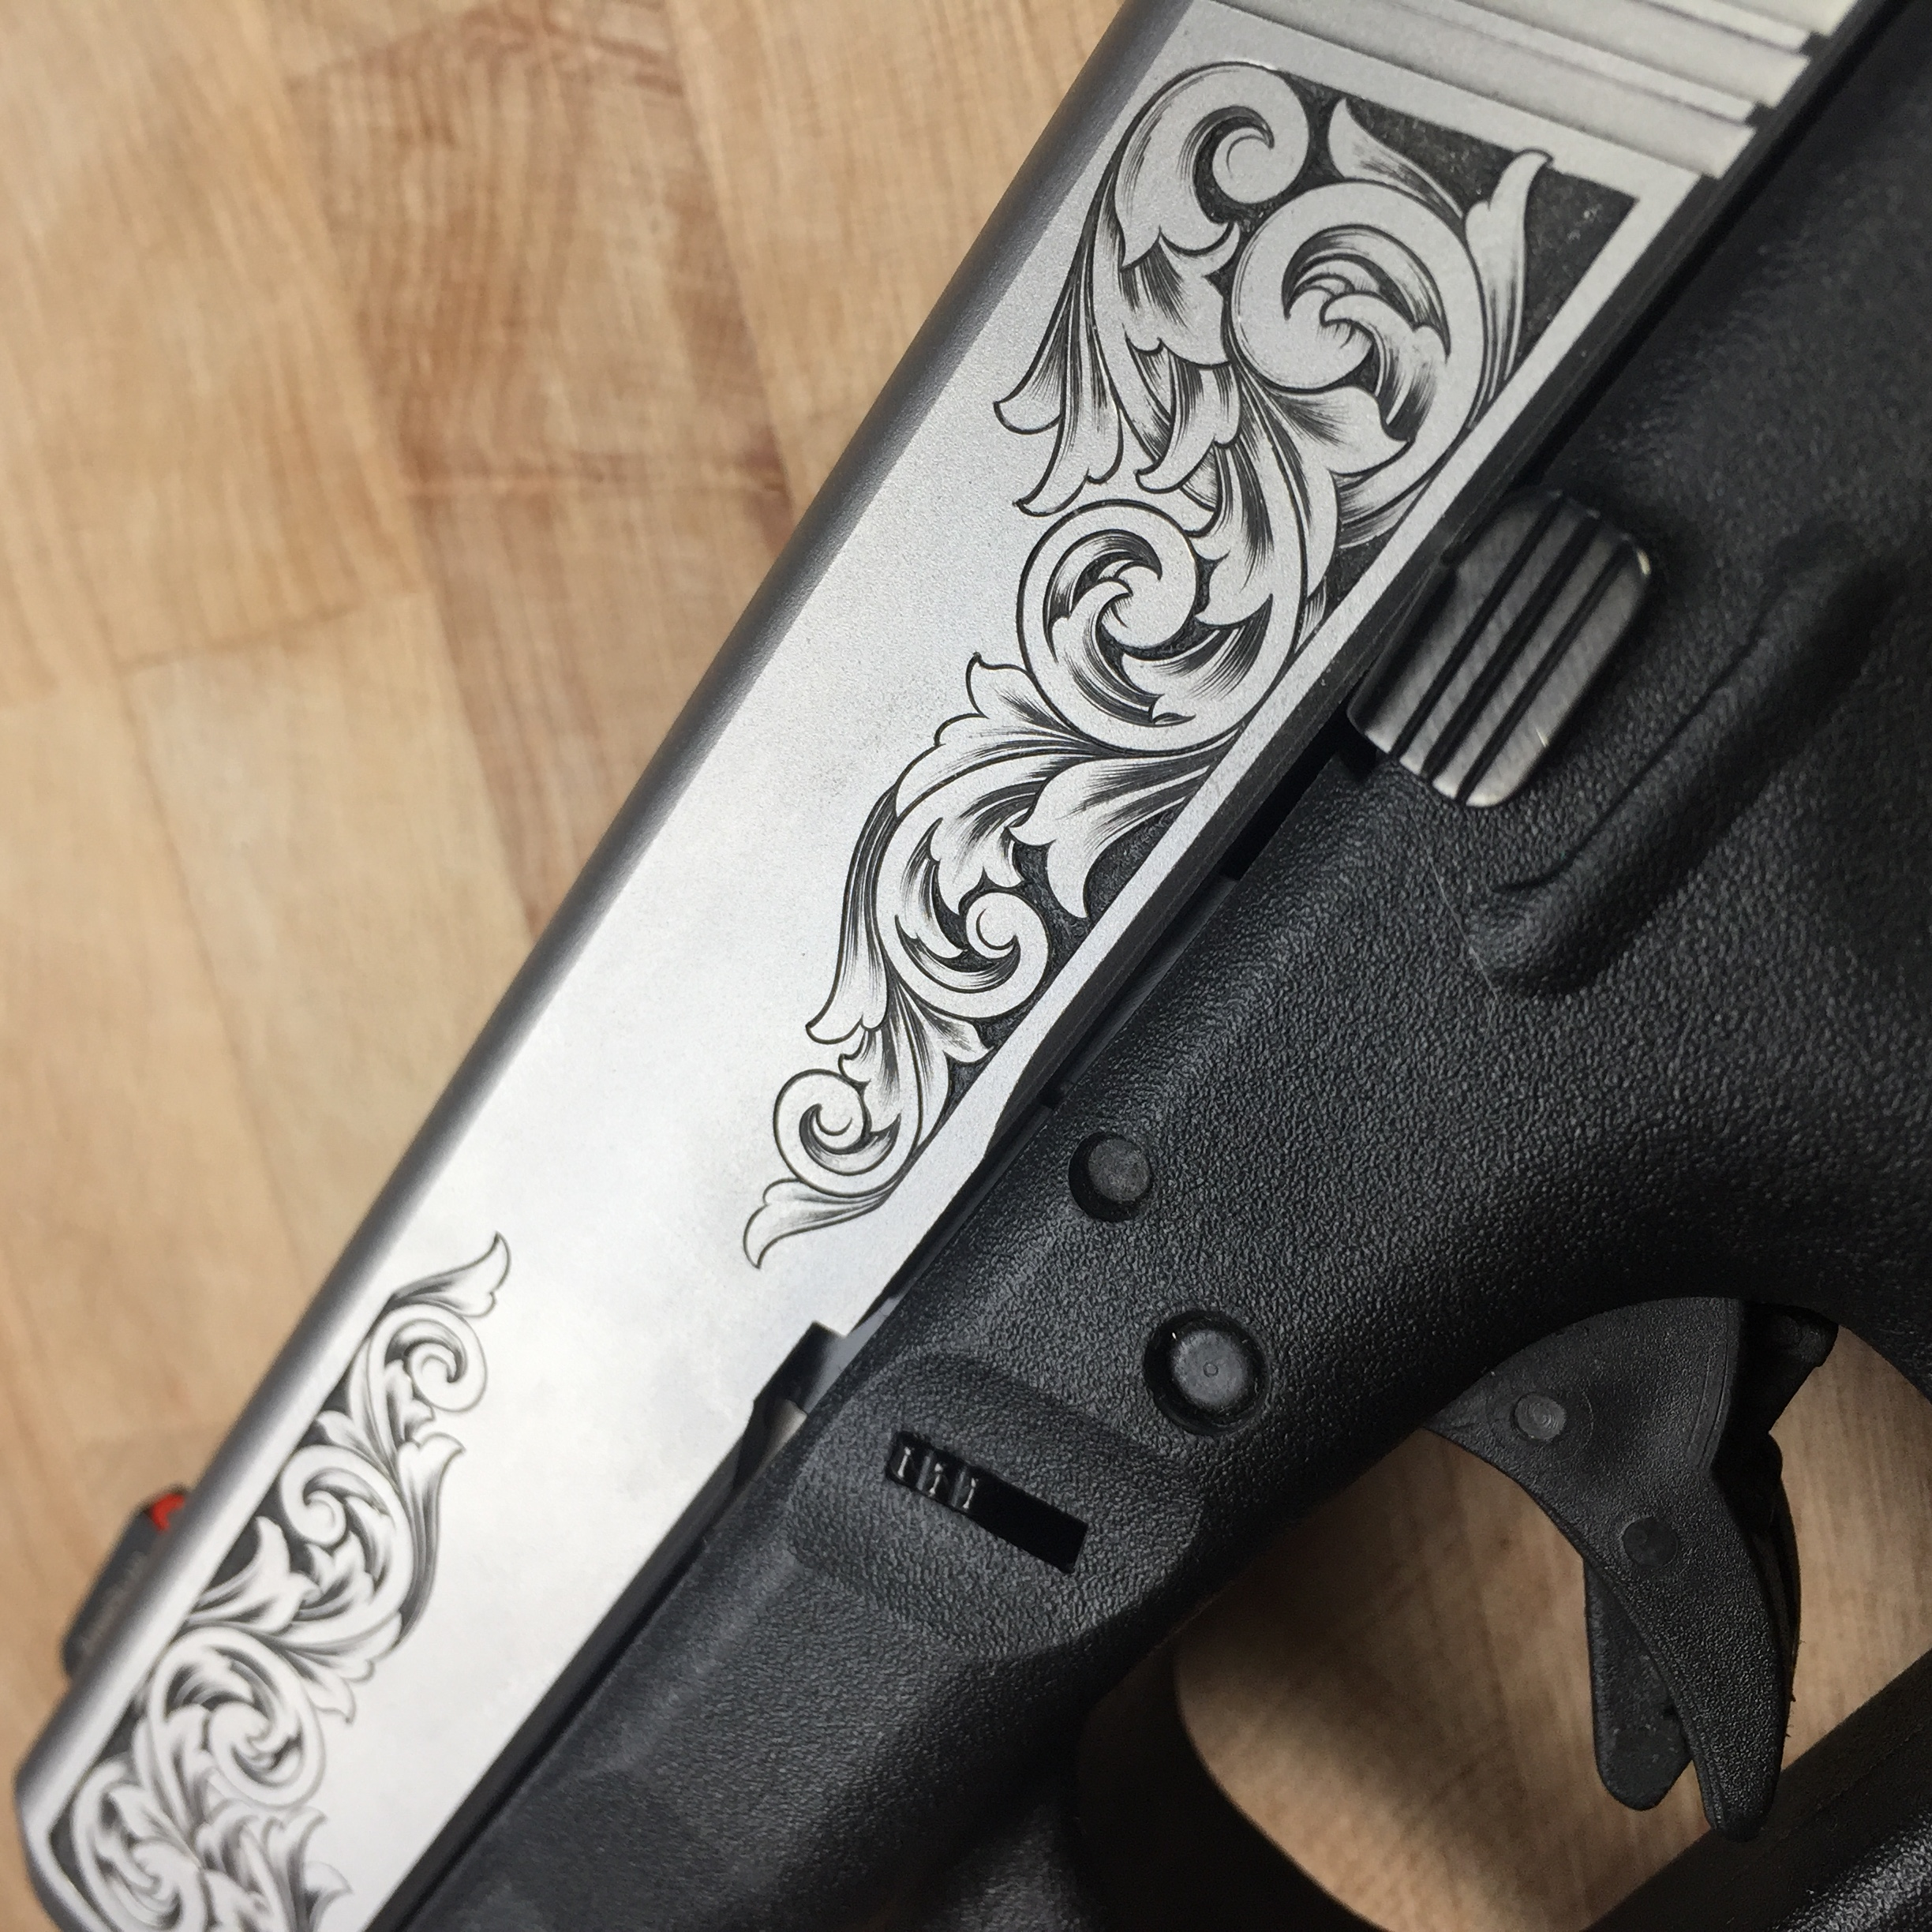 Glock 26 slide on frame detail